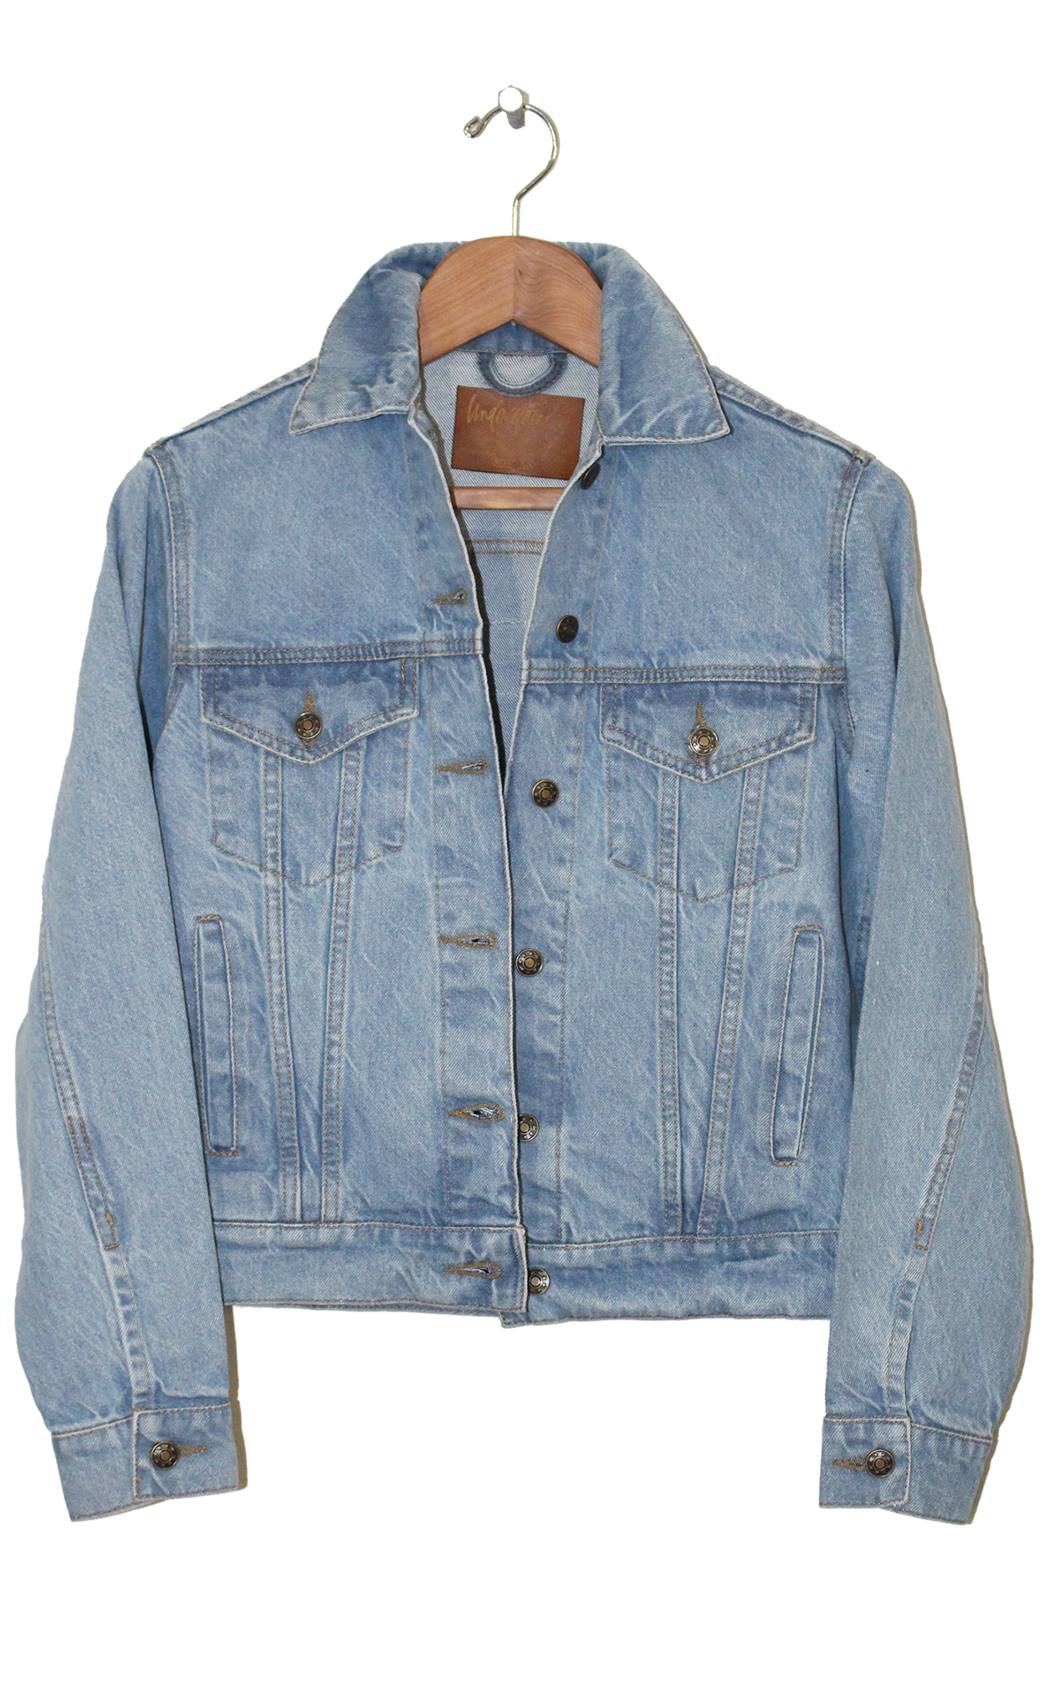 Taking care of business. Jacket clipart jeans jacket